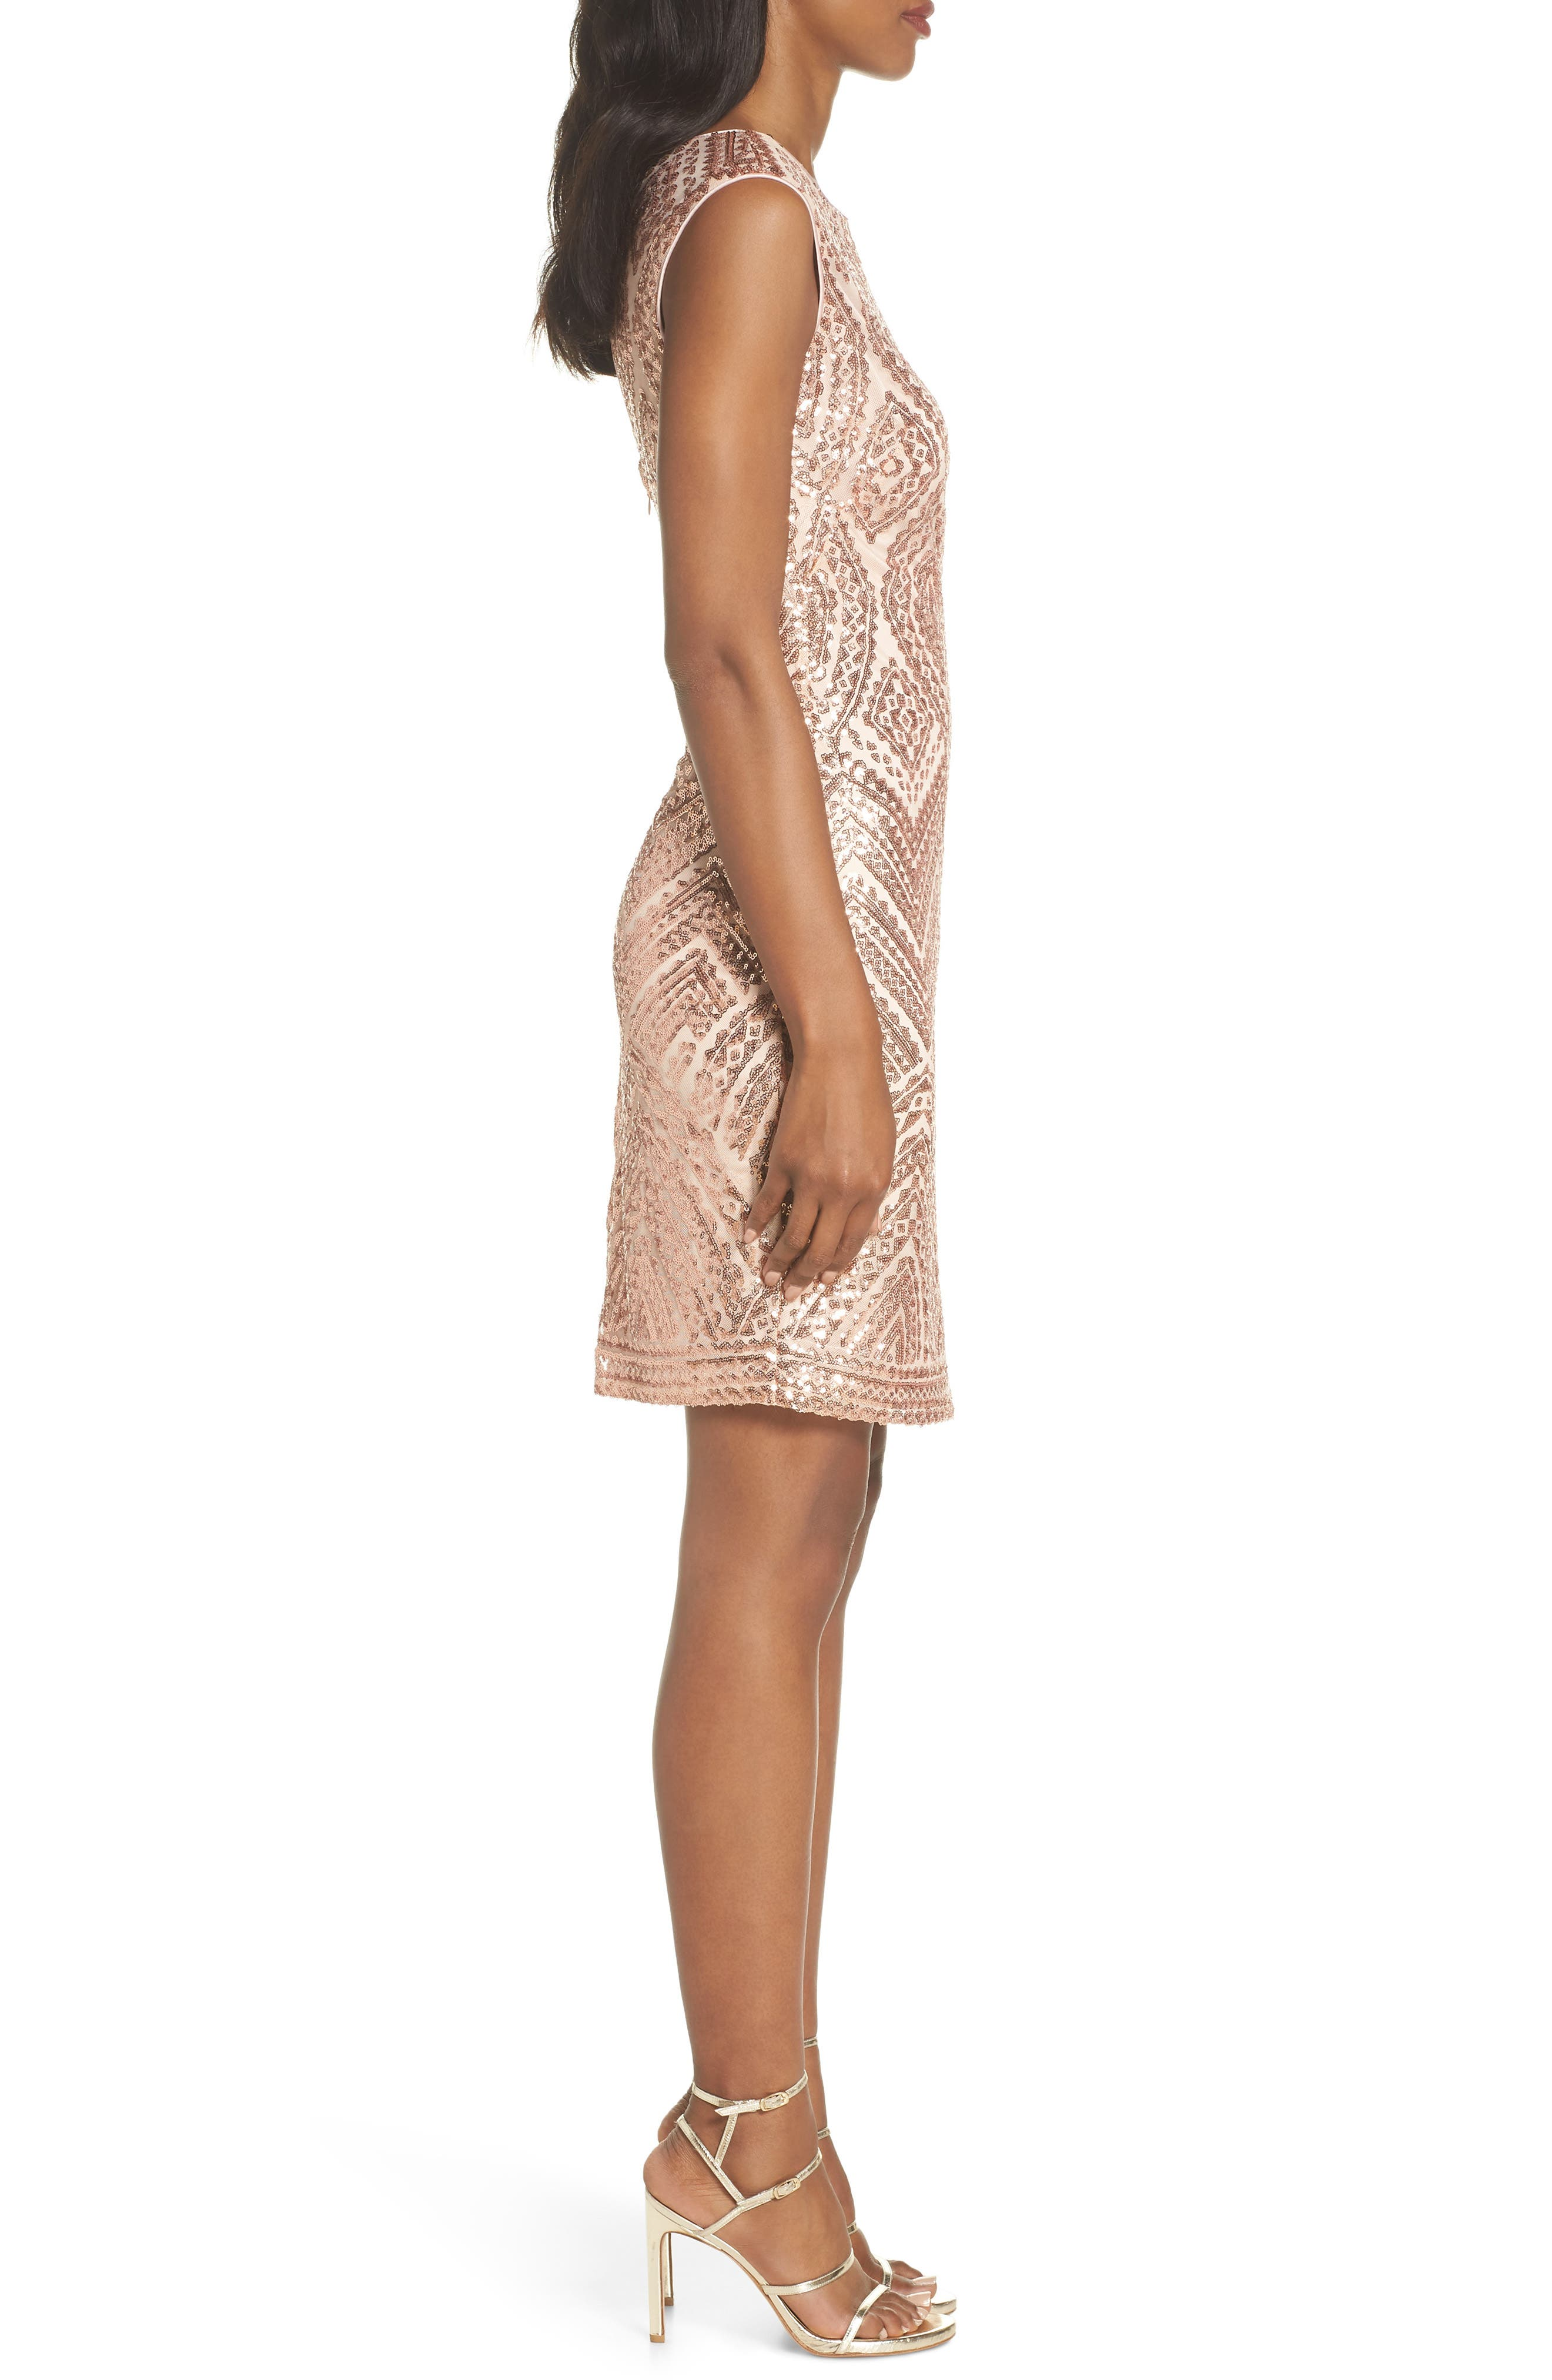 VINCE CAMUTO,                             Sequin Embellished Cocktail Dress,                             Alternate thumbnail 4, color,                             254